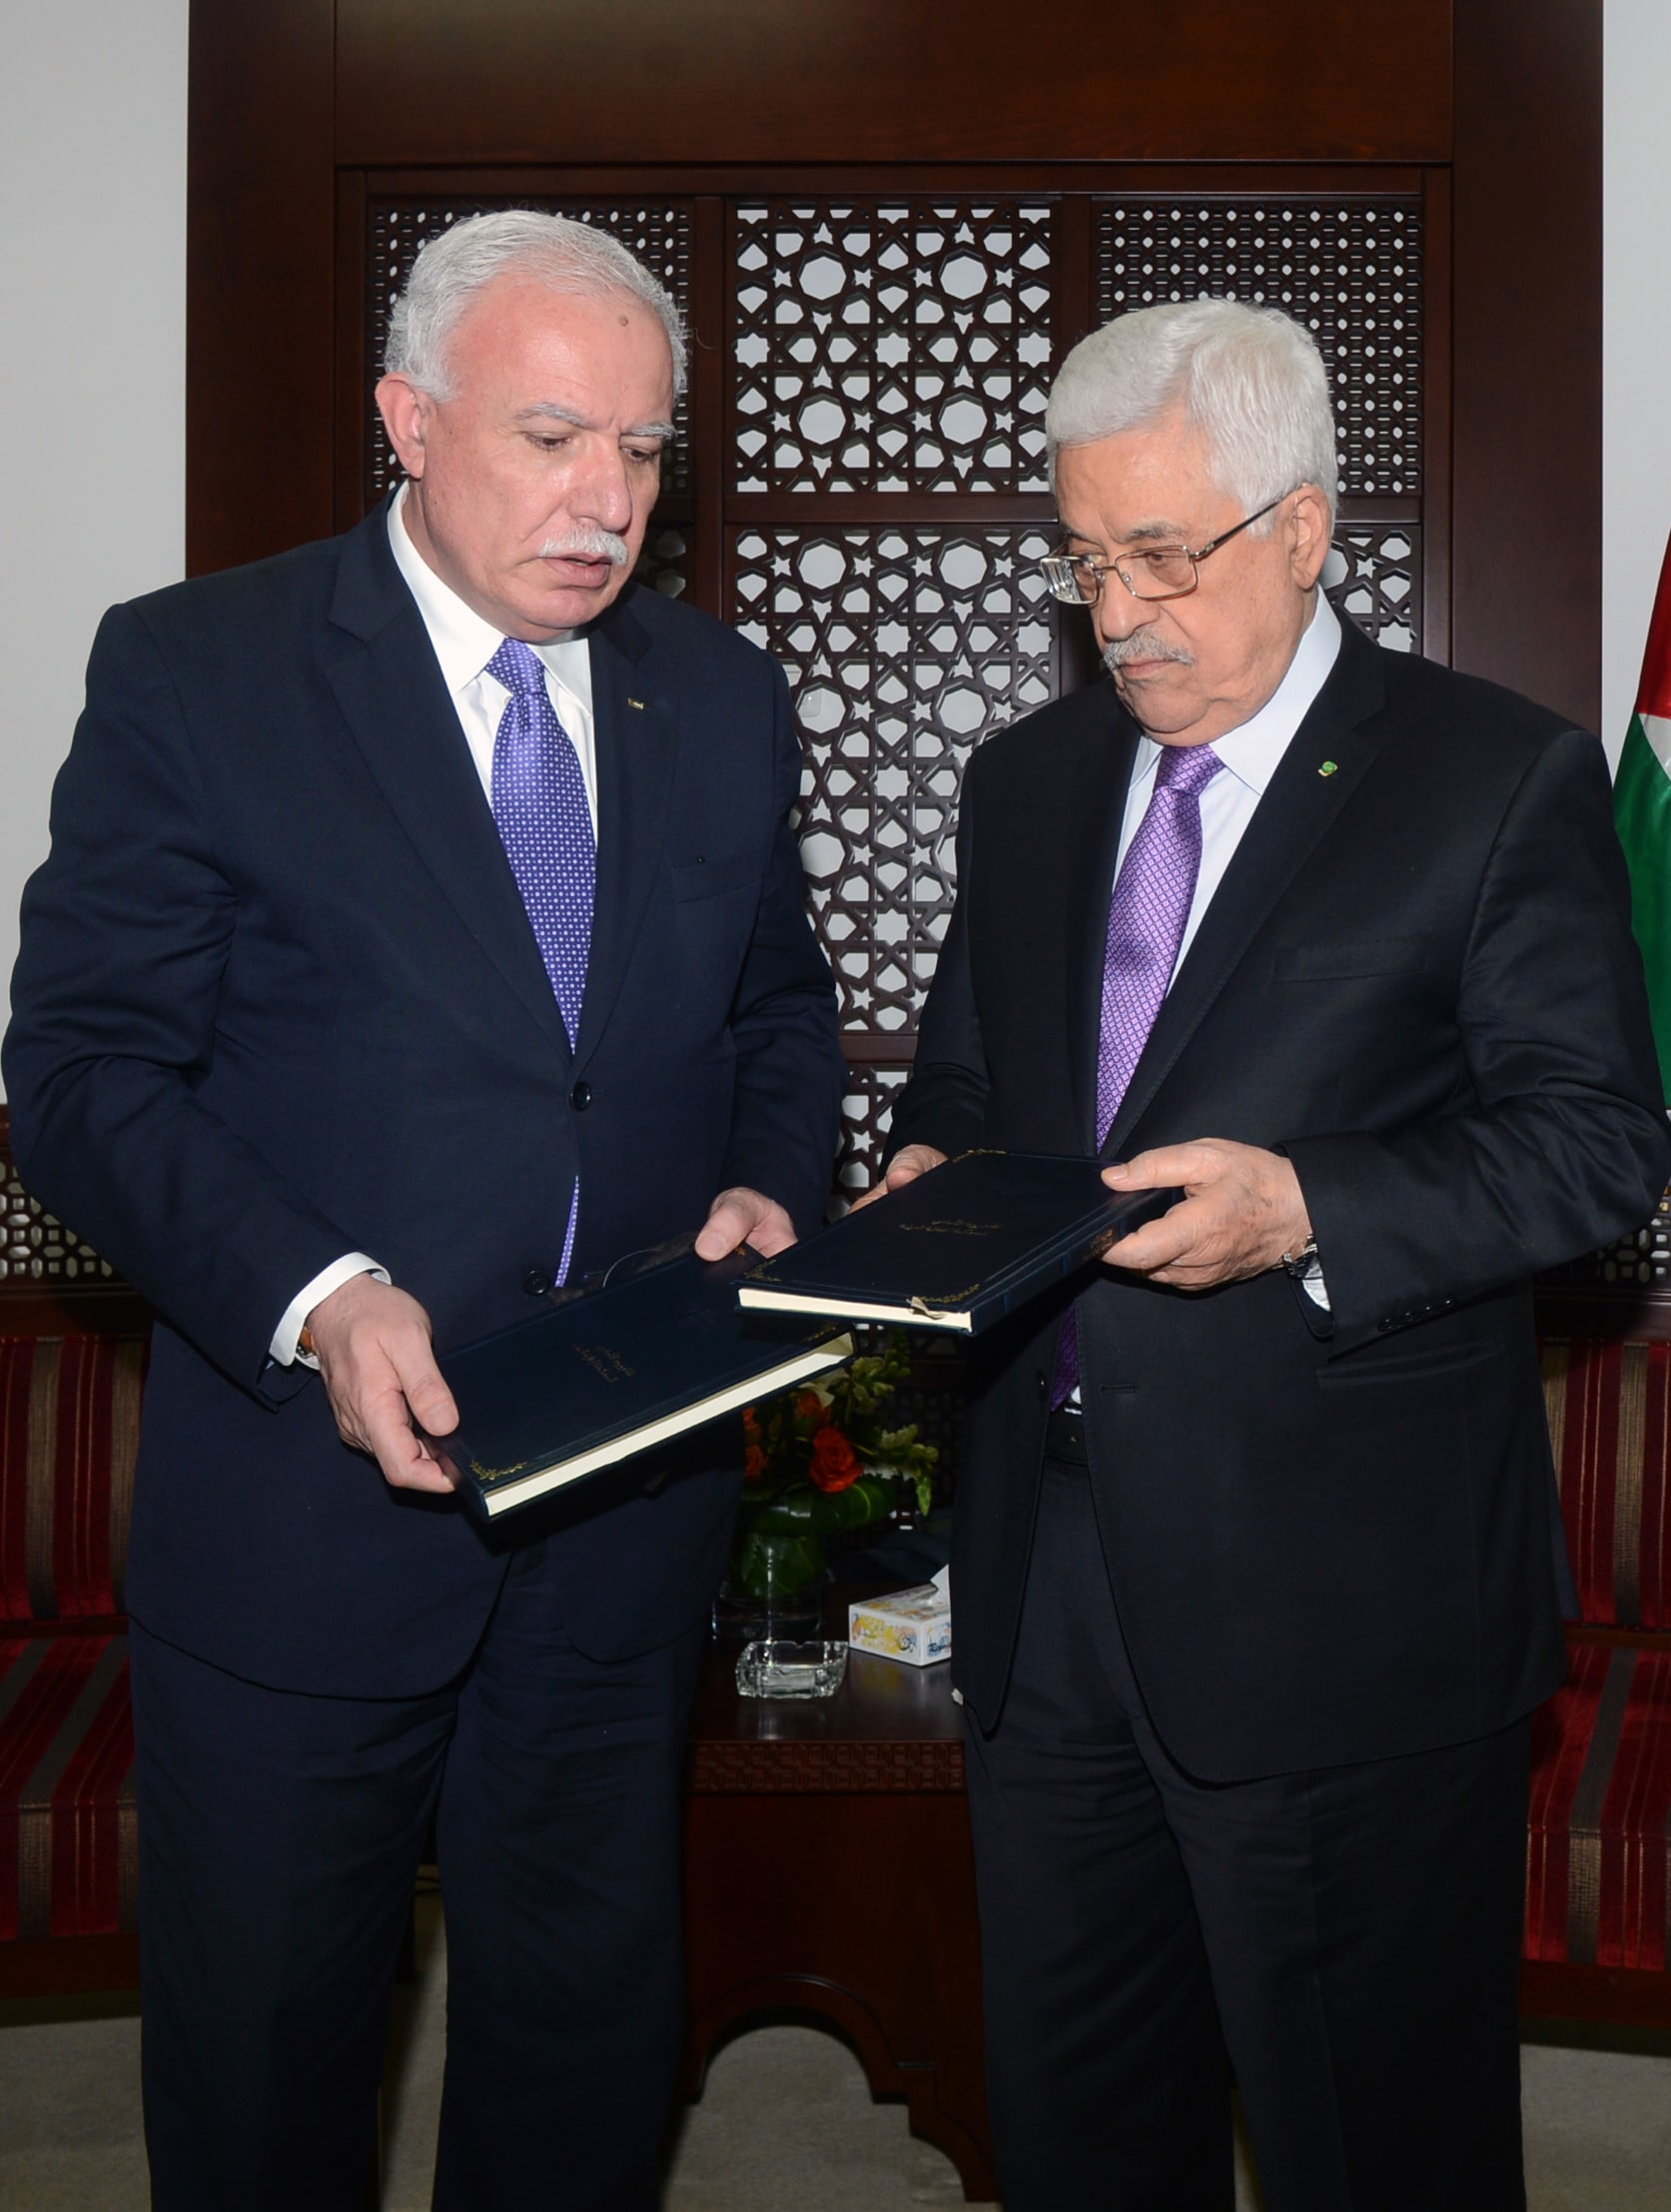 Palestine officially joins International Criminal Court